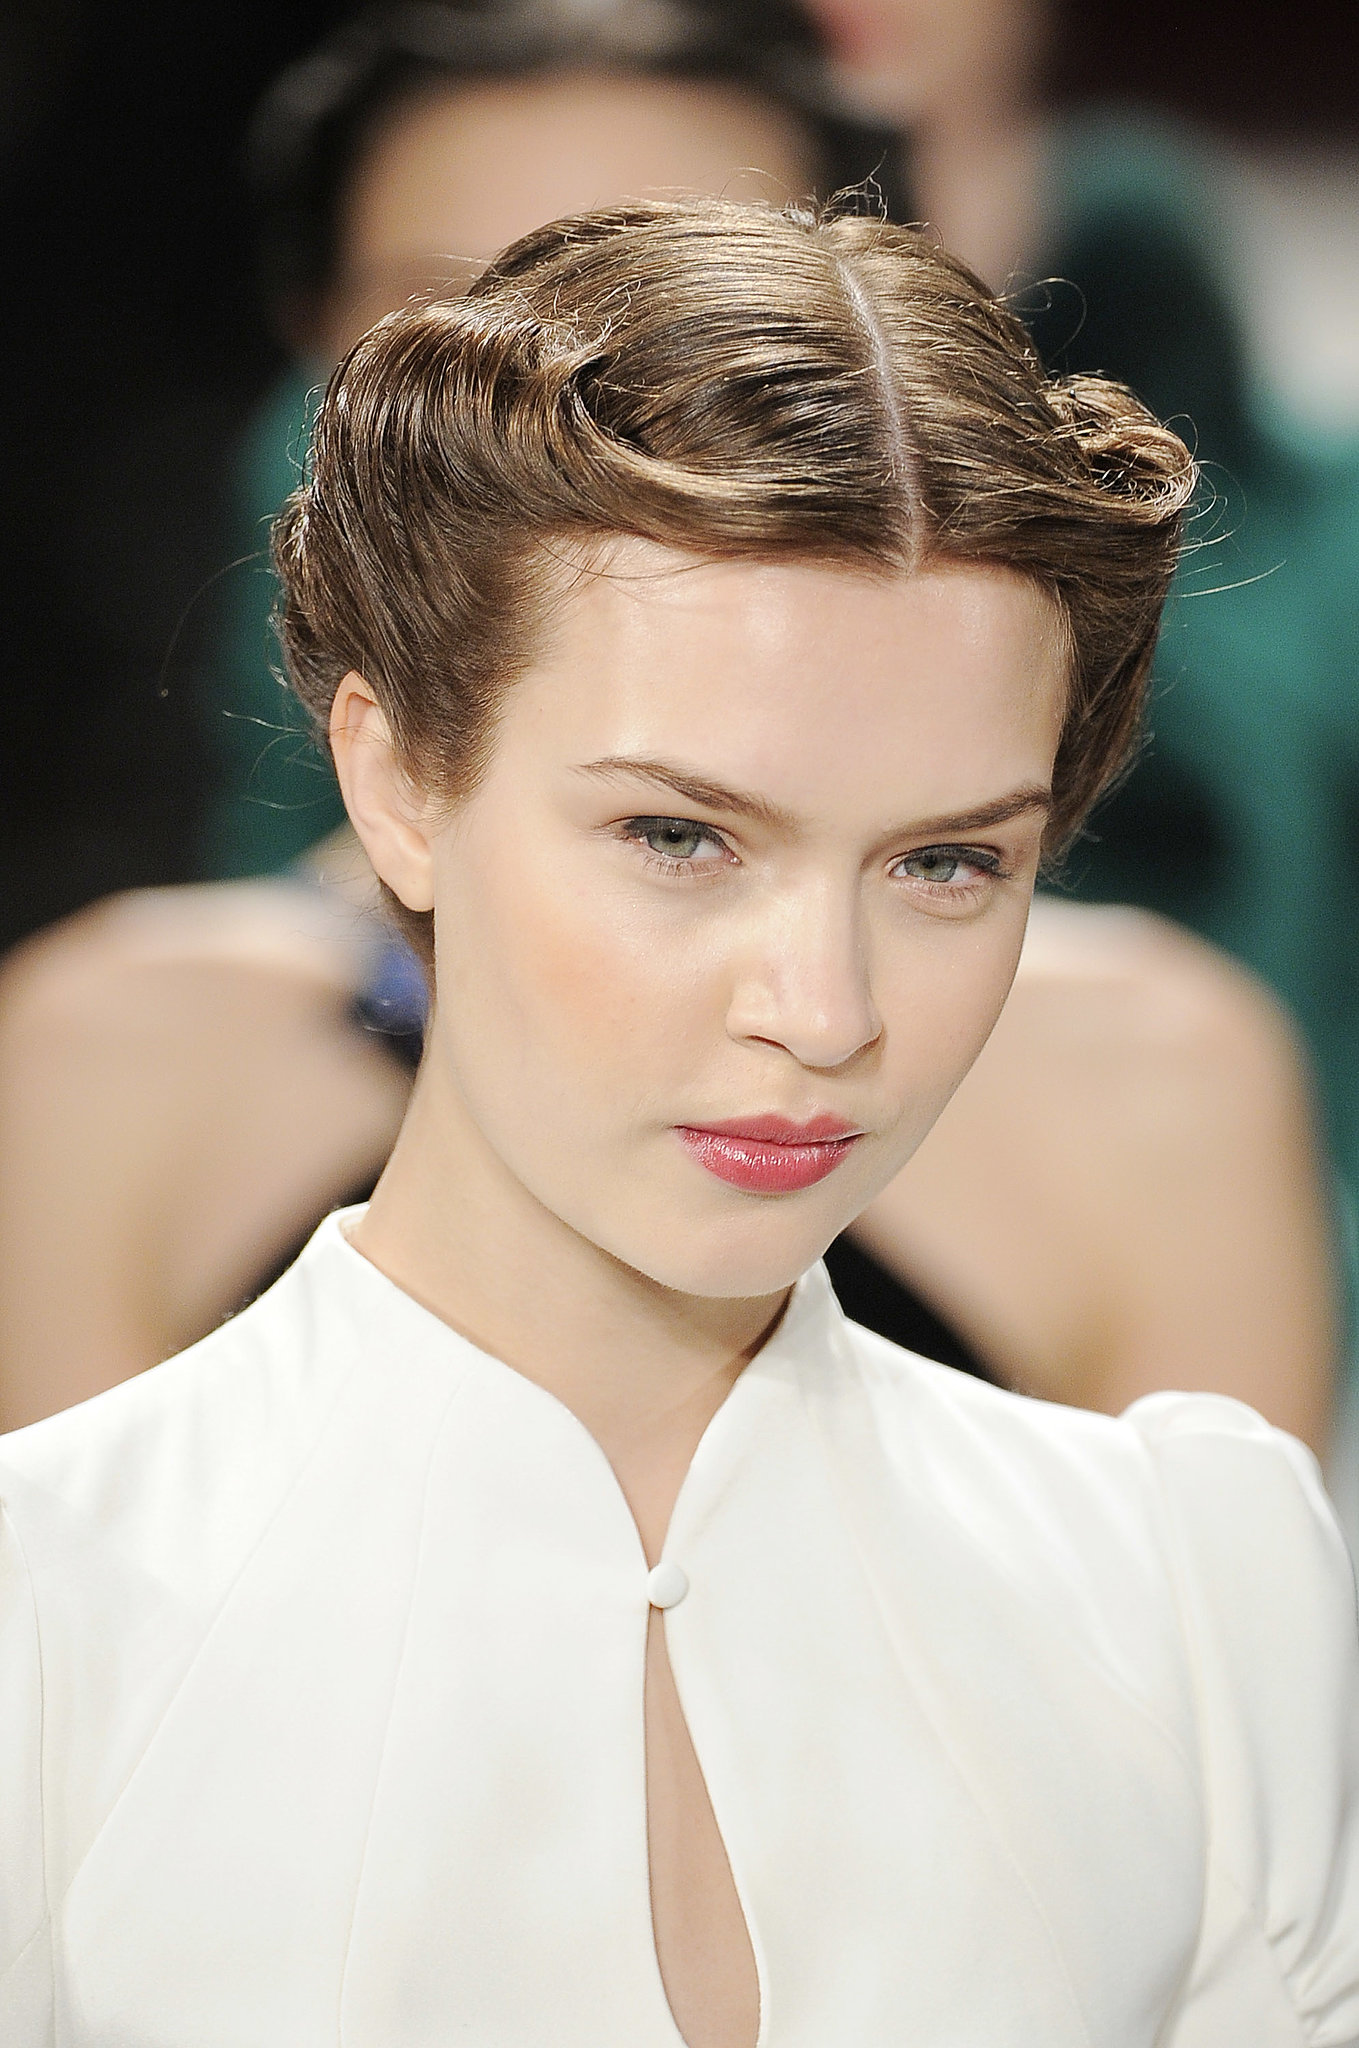 5 minute hairstyles for short hair : chic 40s-style rolled updo kept the hair off the face of models in ...